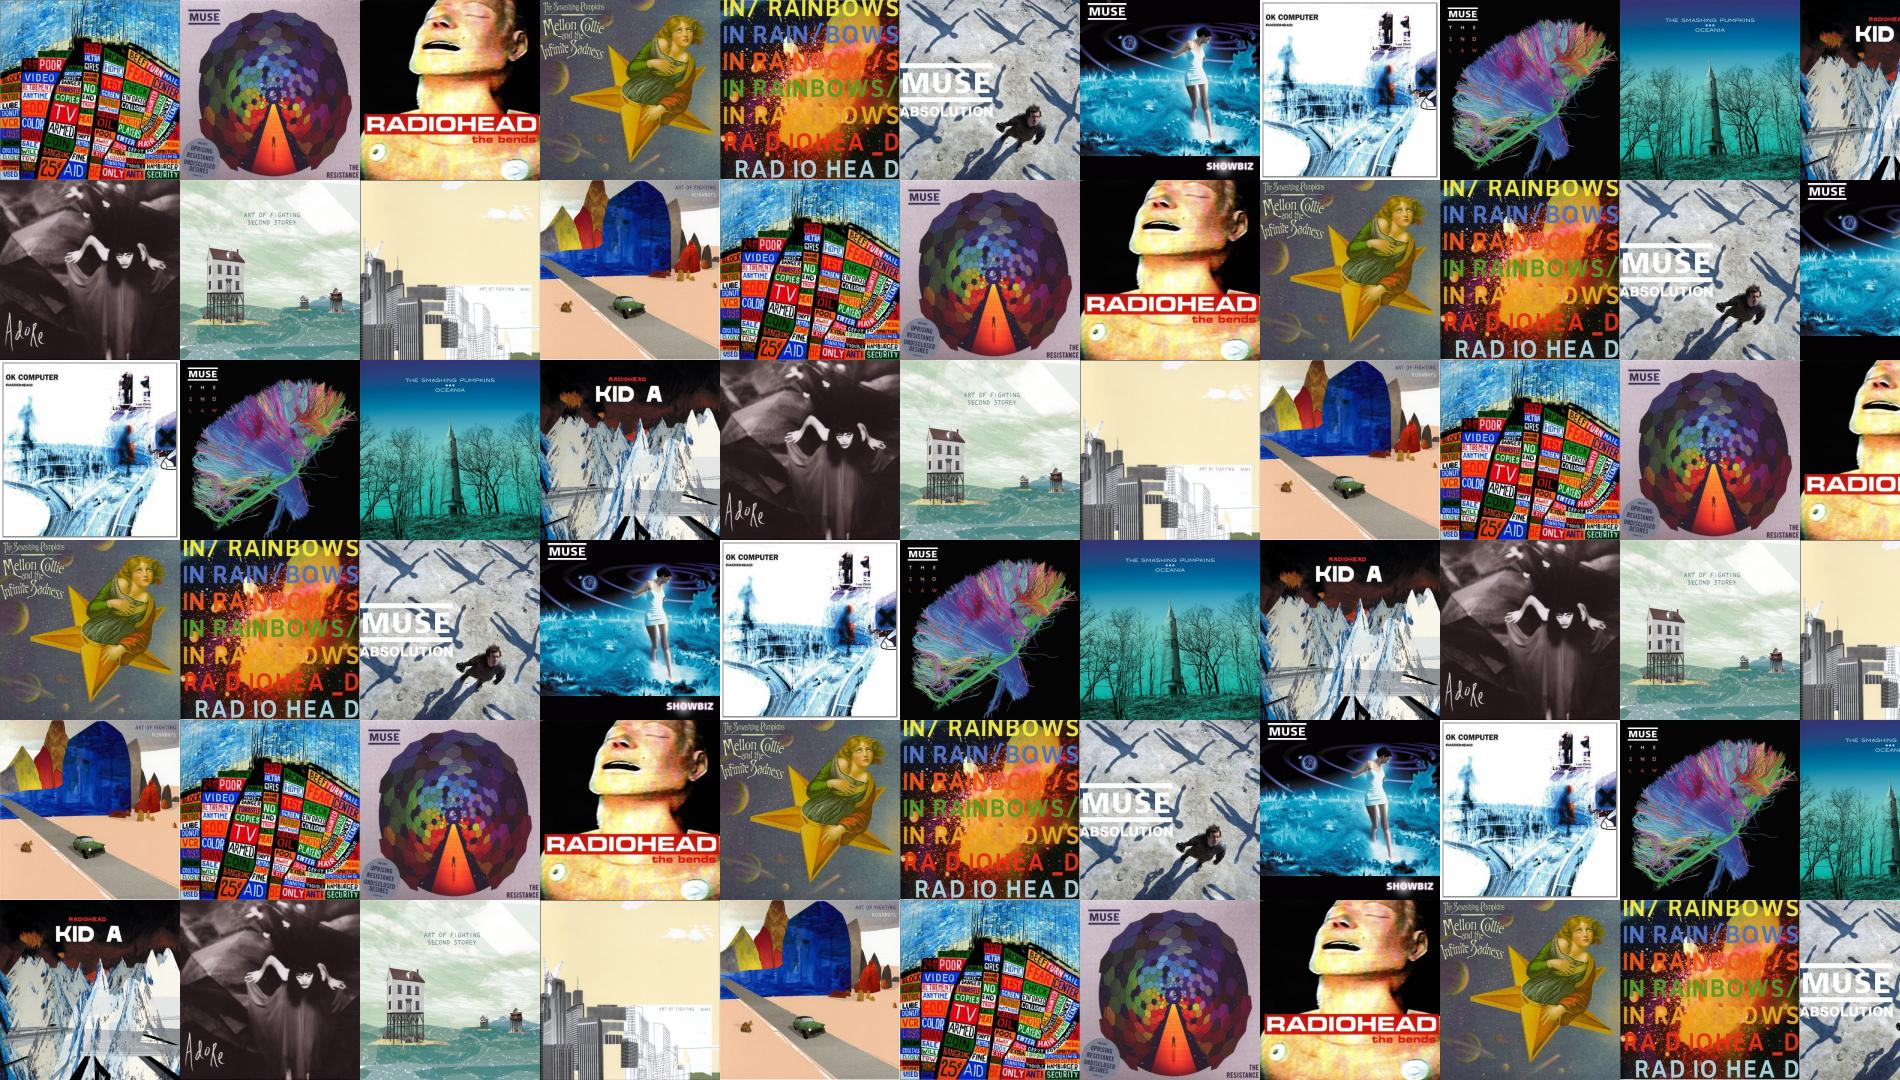 Radiohead Hail To The Thief Muse Resistance Bends Wallpaper Tiled